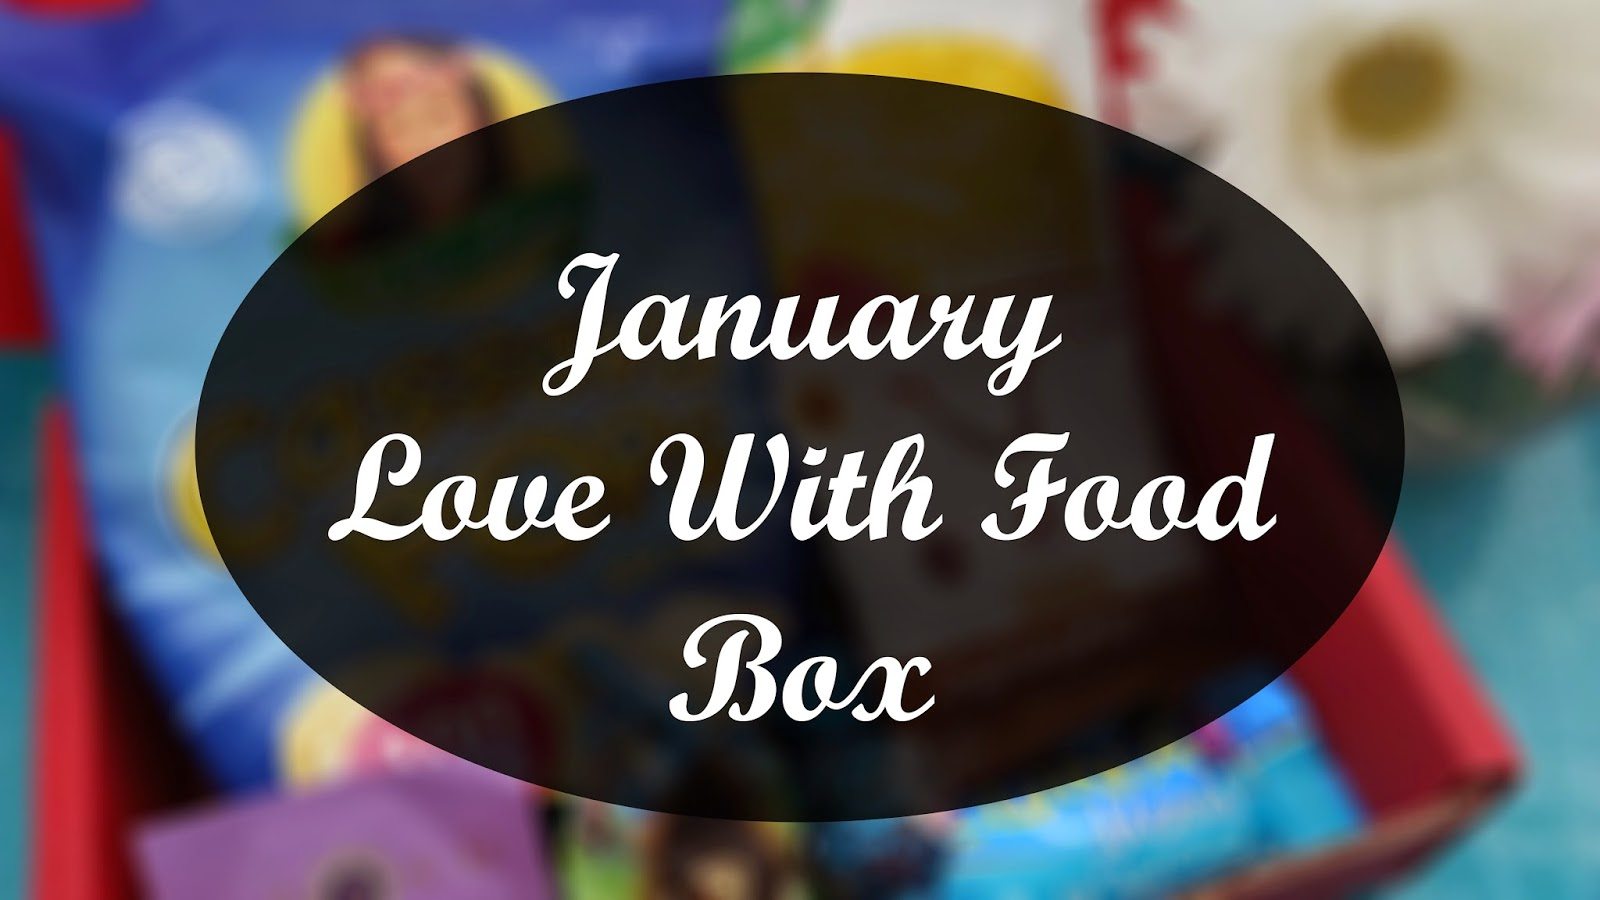 Unboxing: January Love With Food Box